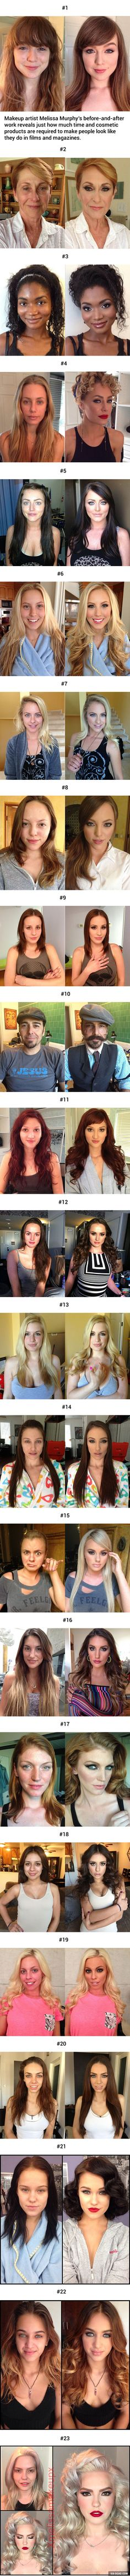 23 Before-And-After Pics Reveal The Power Of Makeup (By Melissa Murphy) - 9GAG